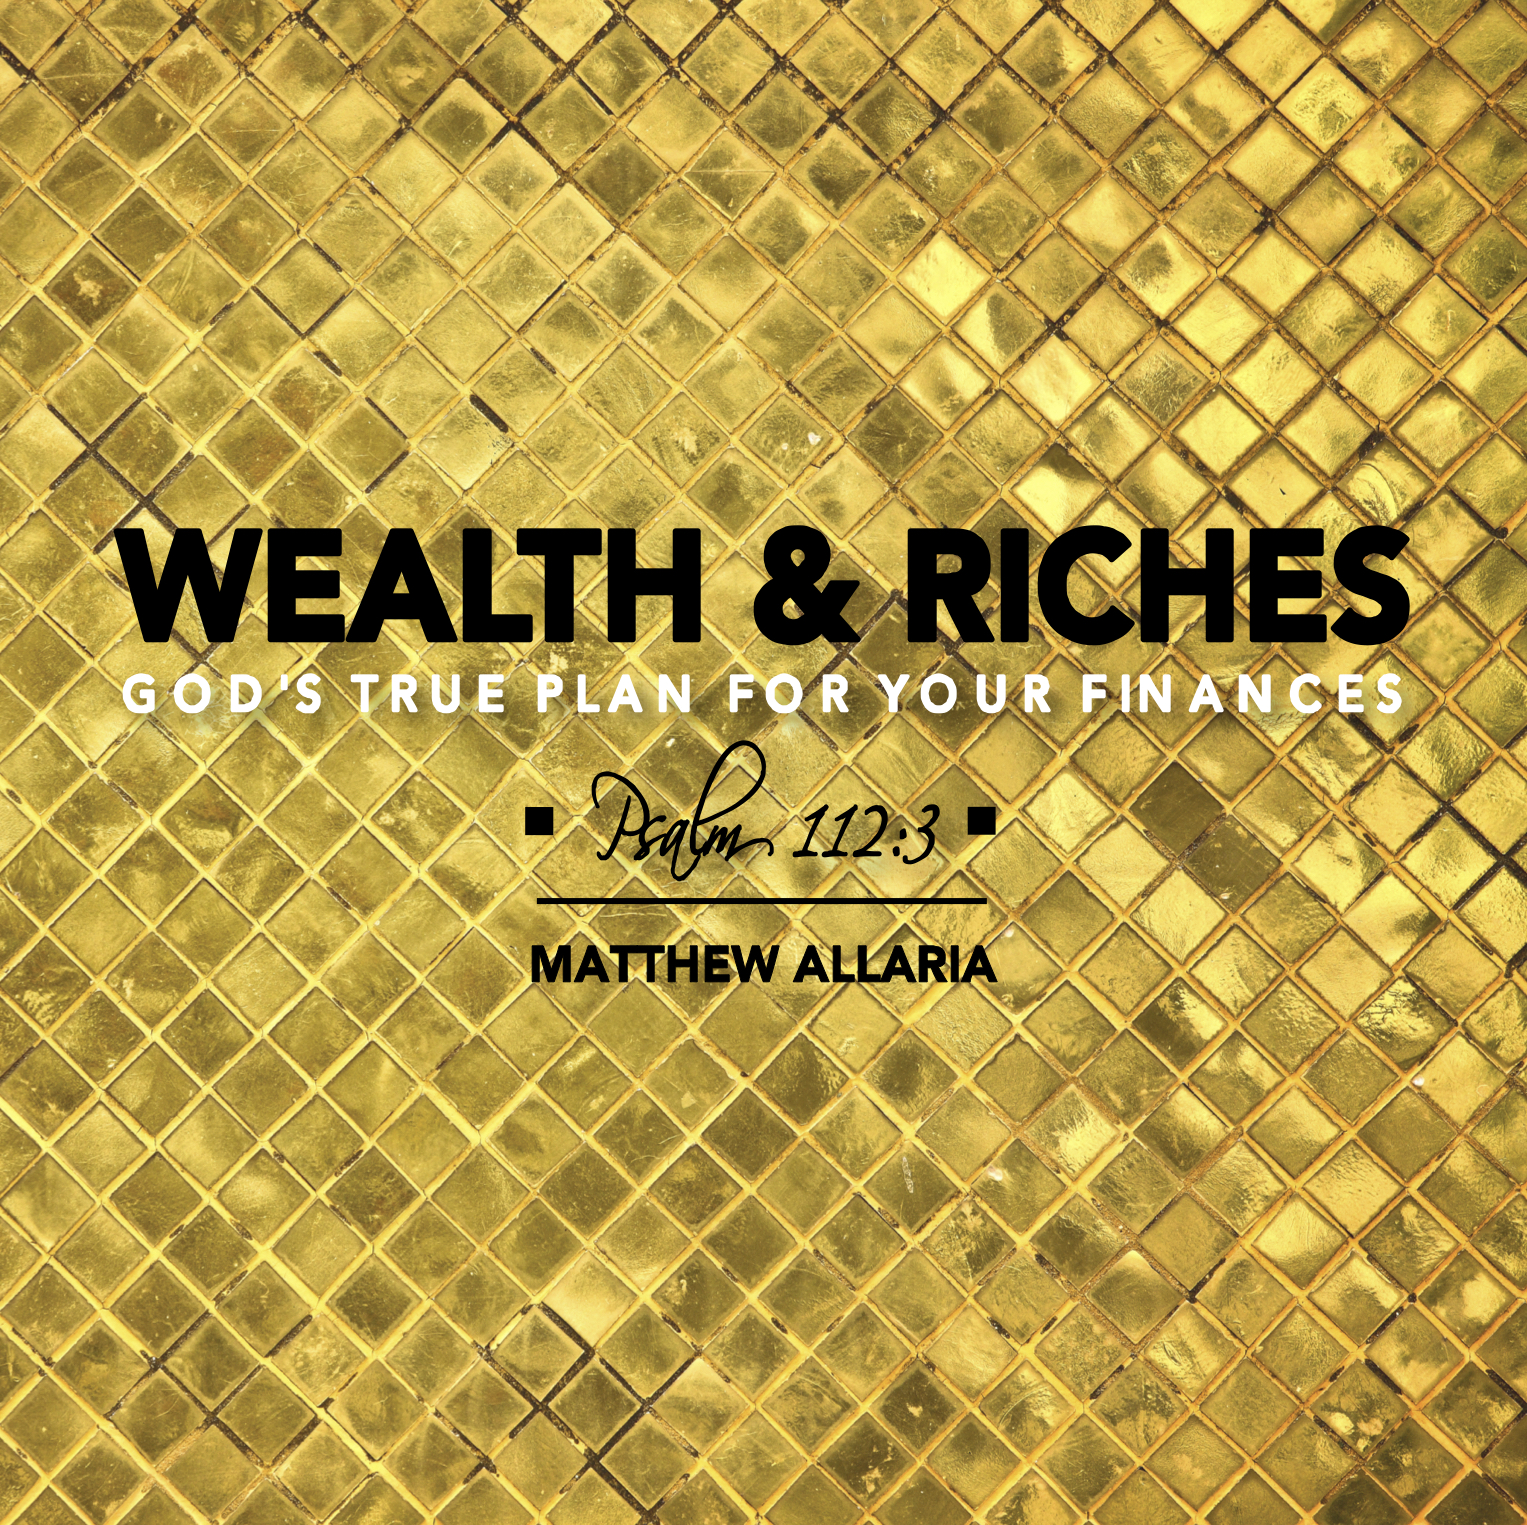 Wealth & Riches Square.jpg